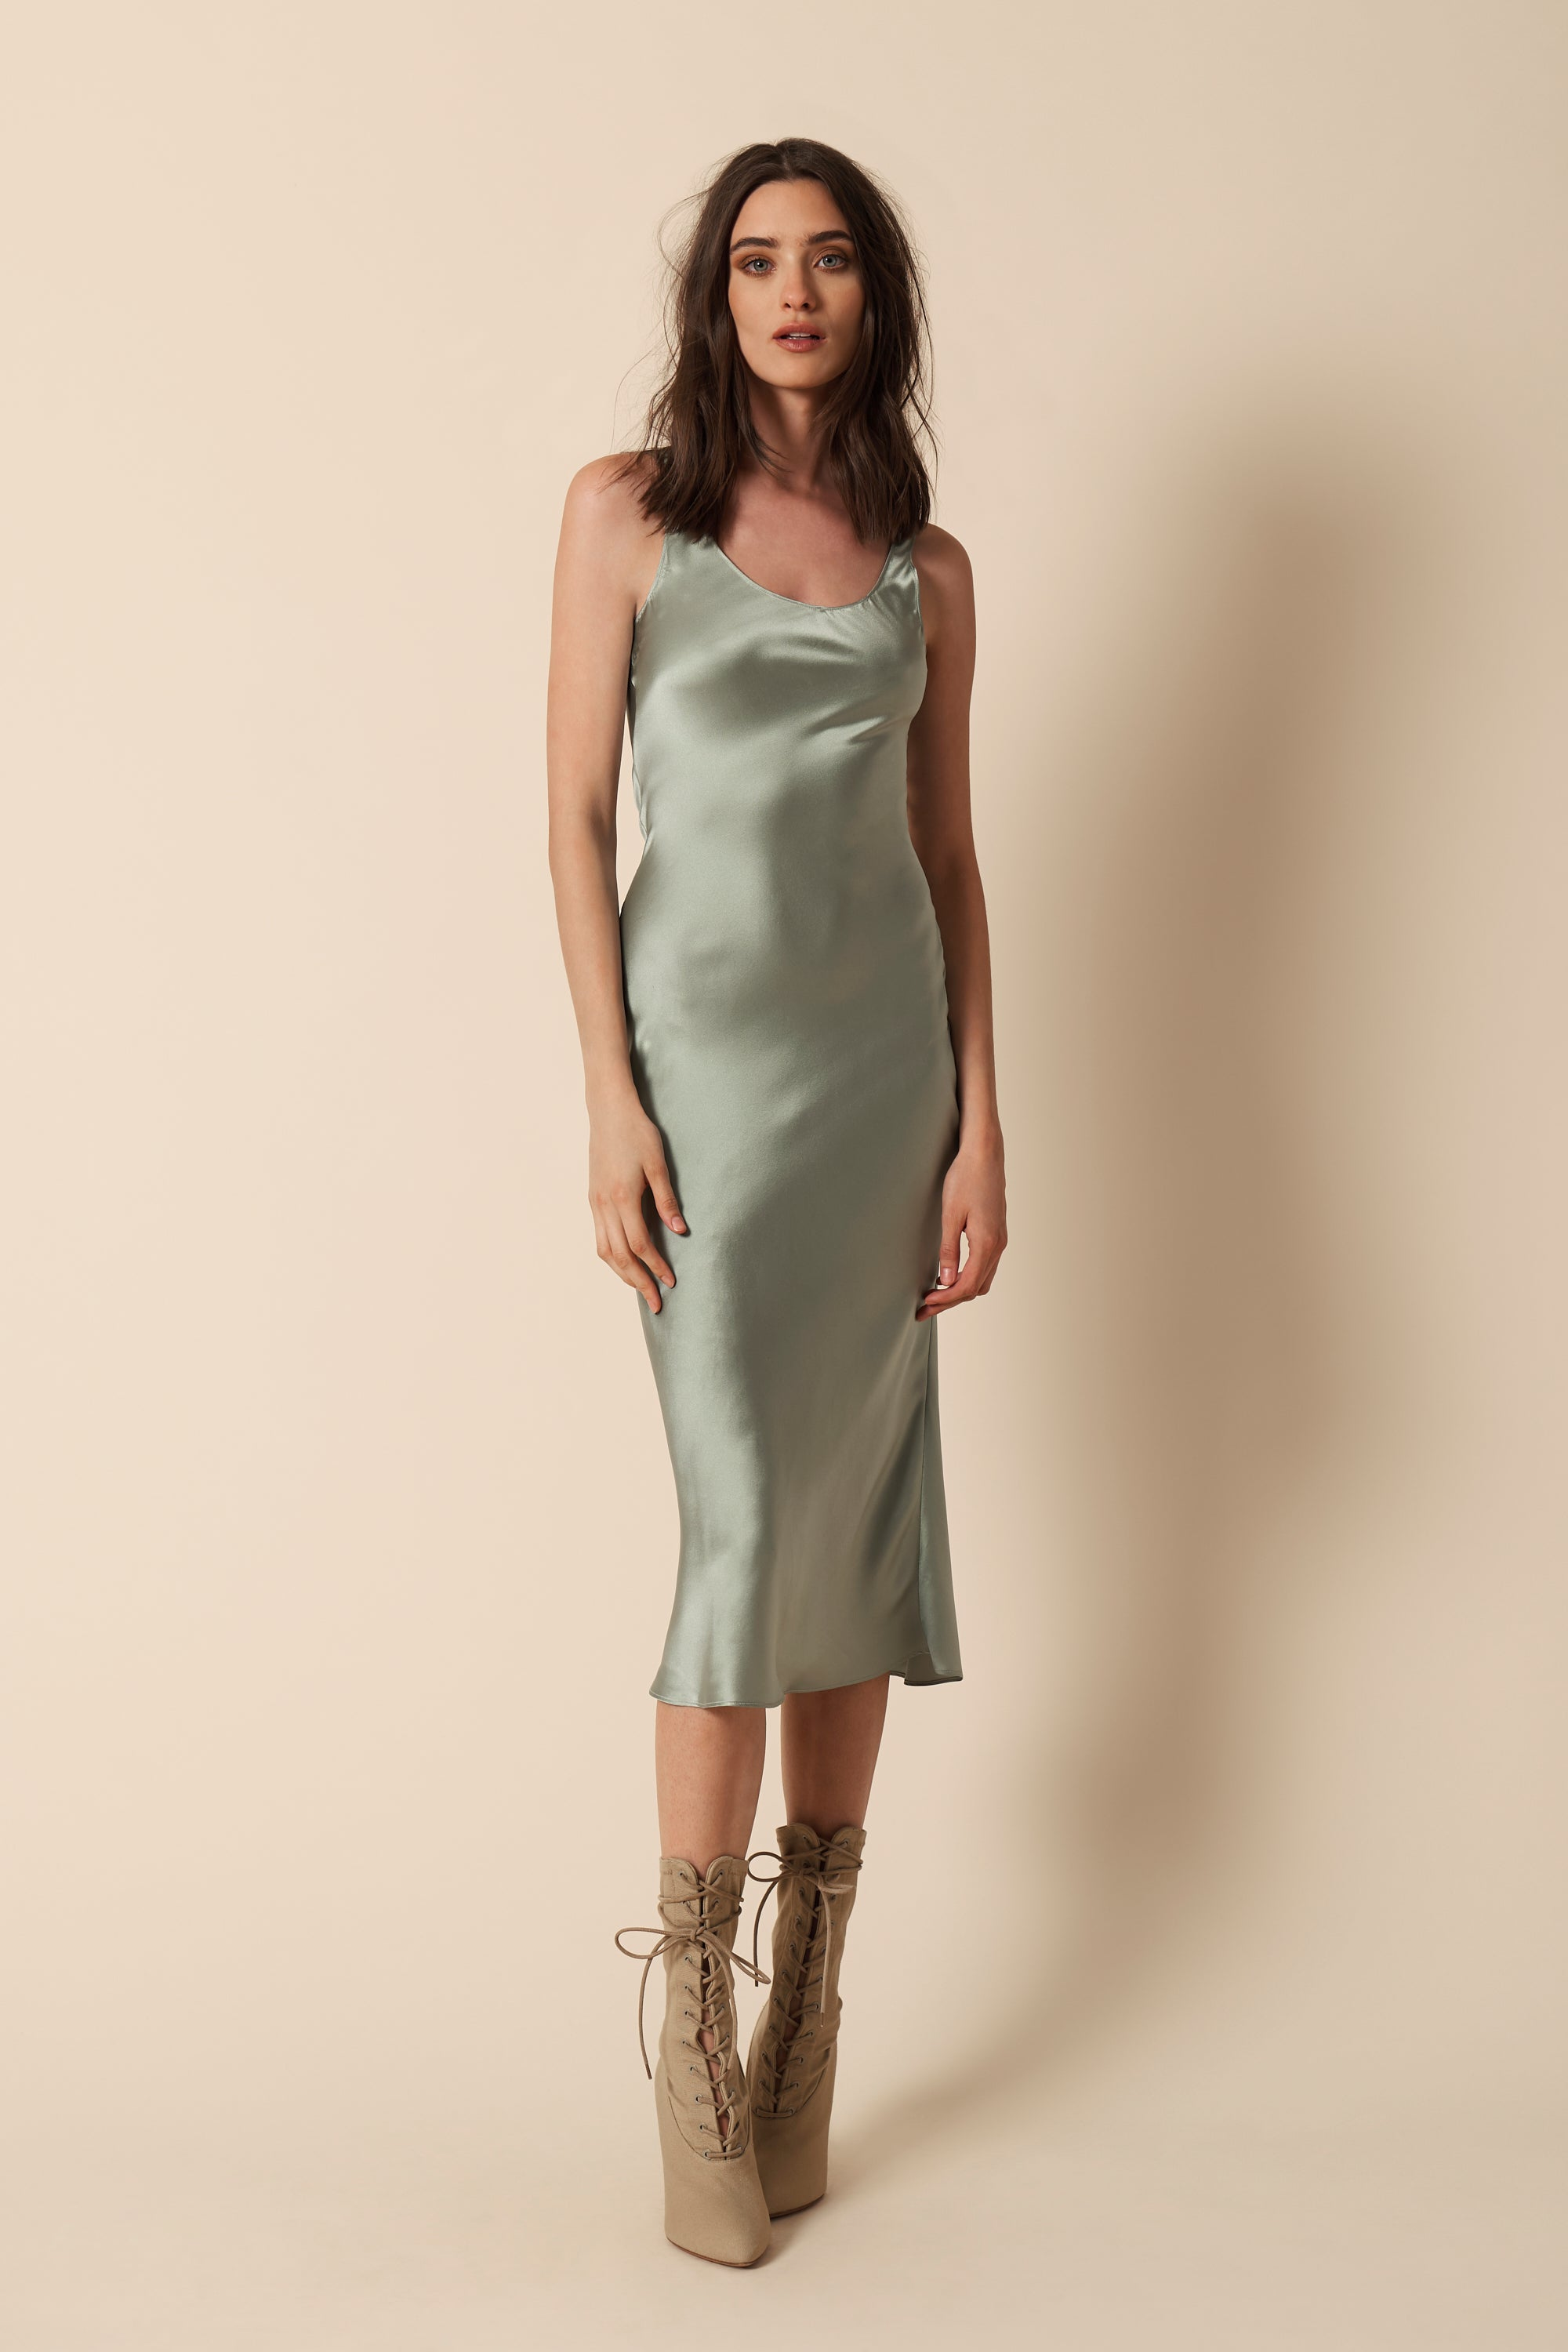 CHARLIE CREW NECK SLIP DRESS | MINT - FINAL SALE